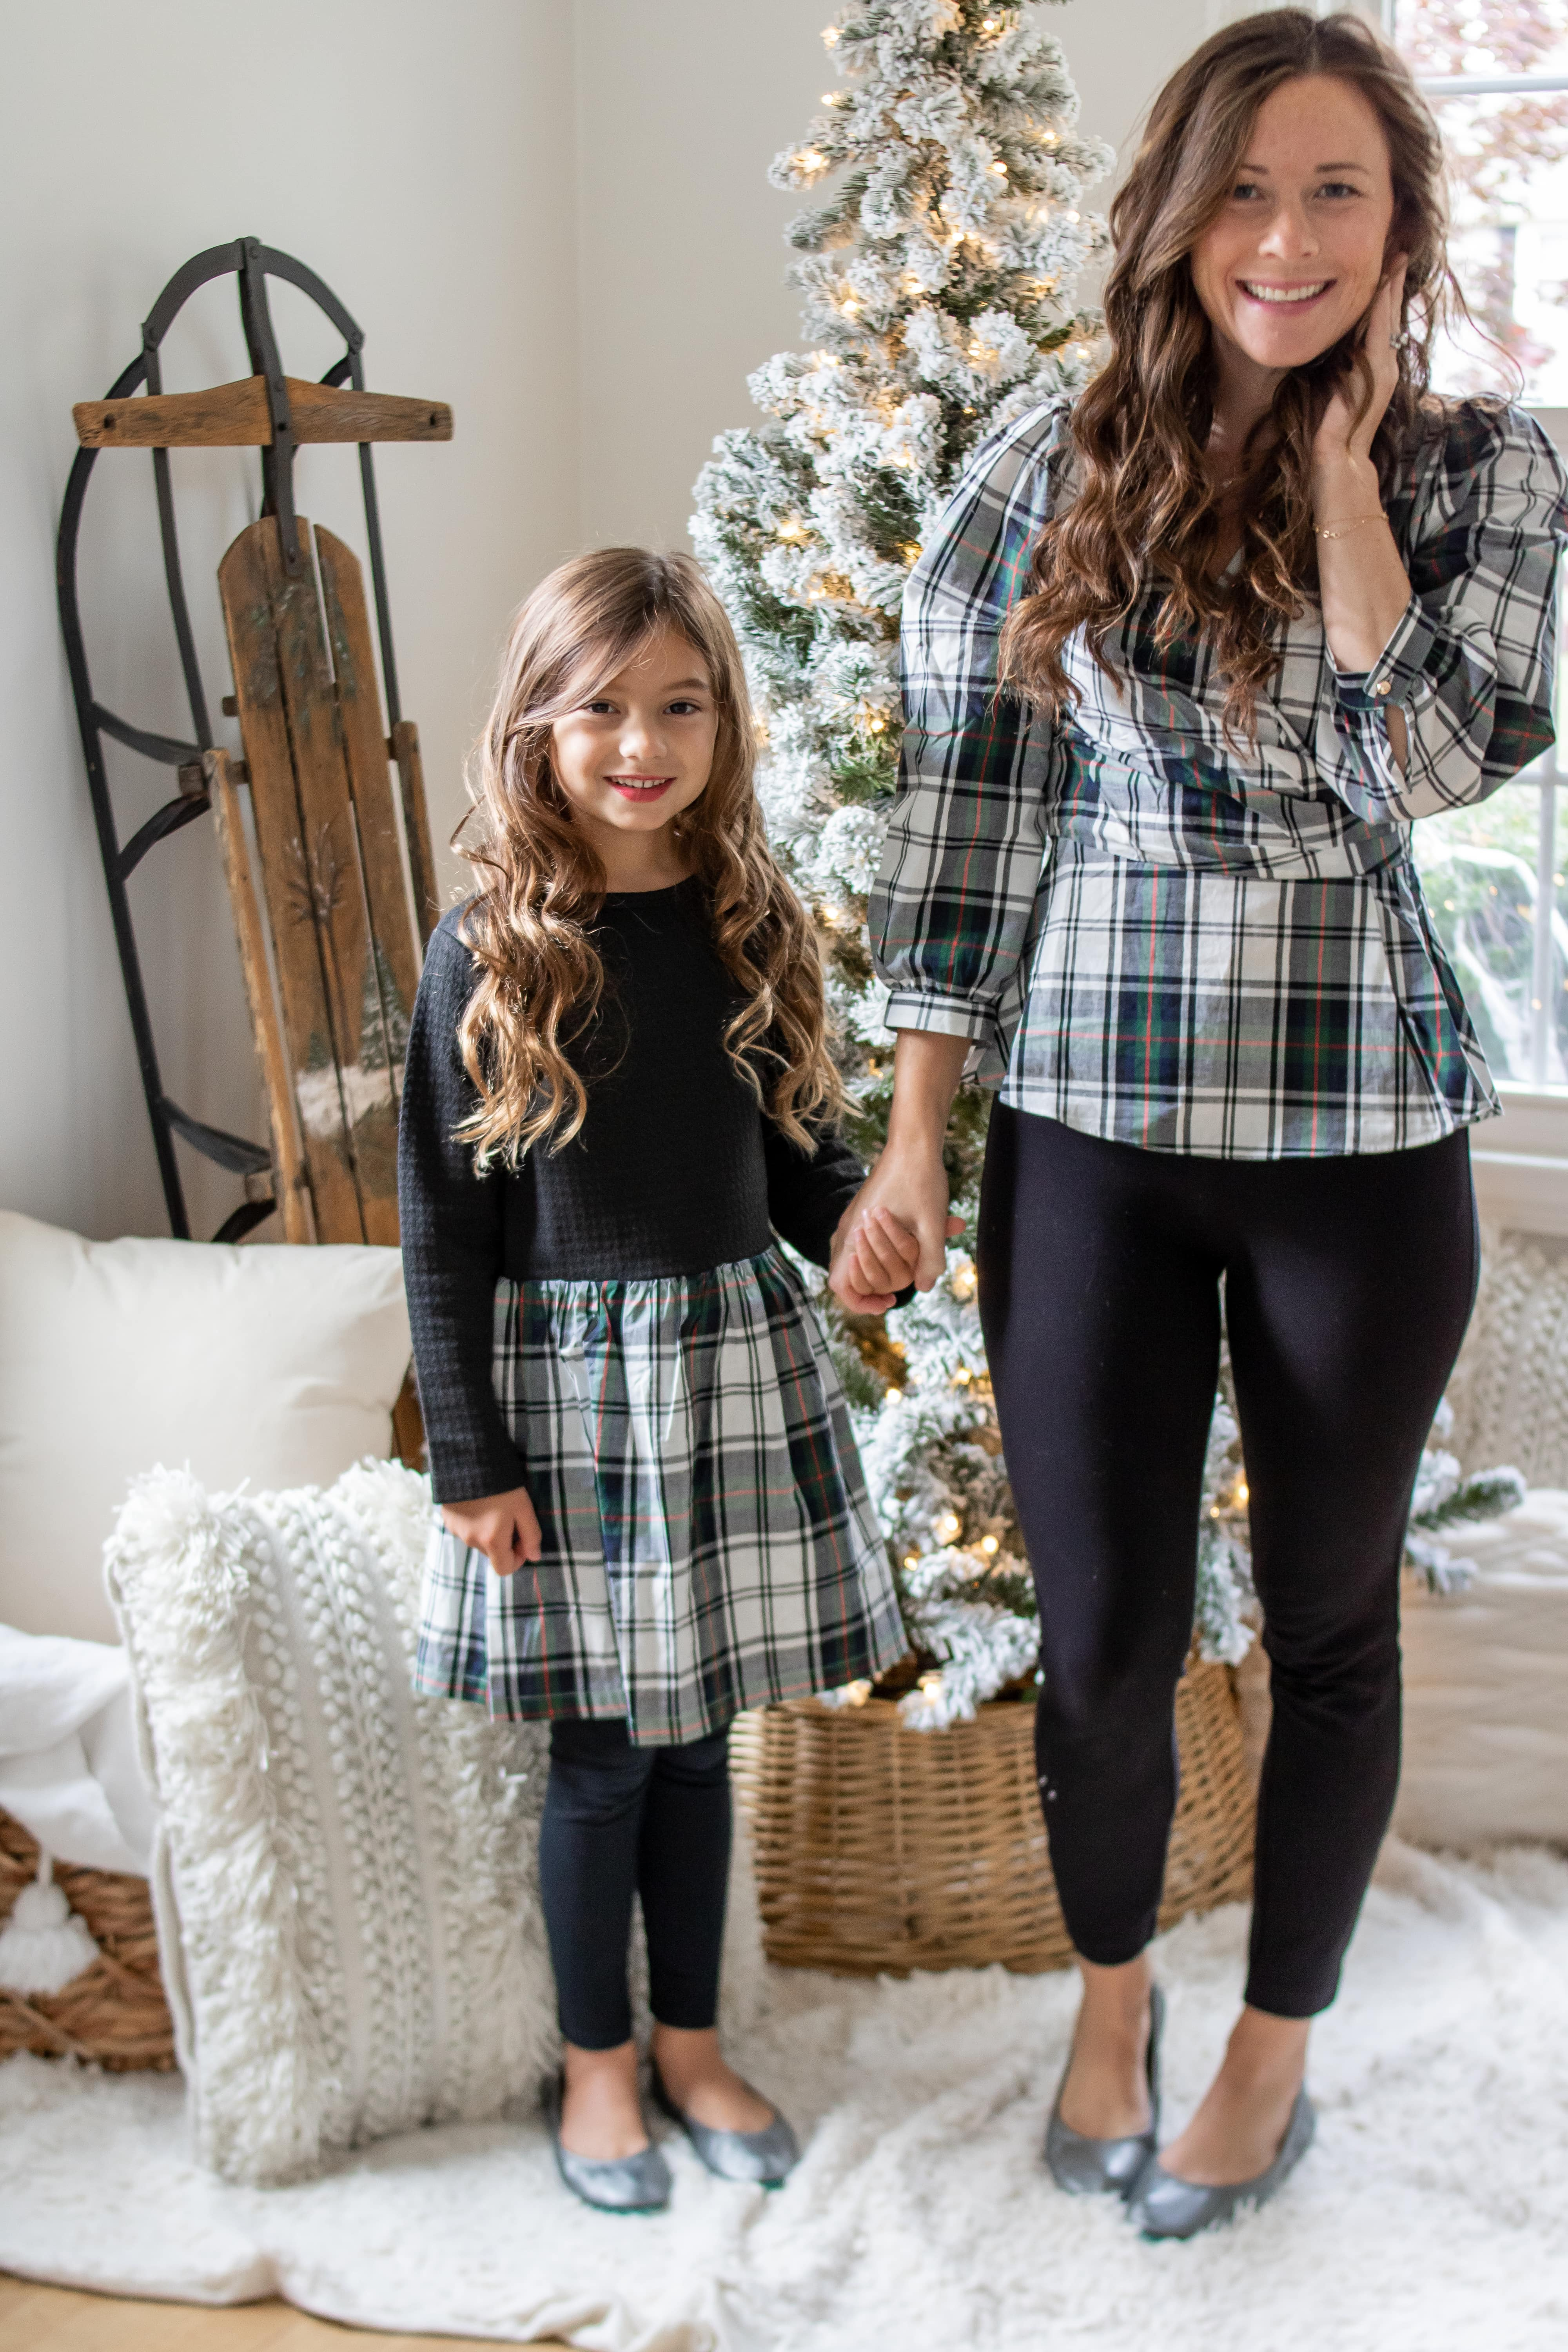 little girl with at mom wearing matching black plaid outfits and Tieks